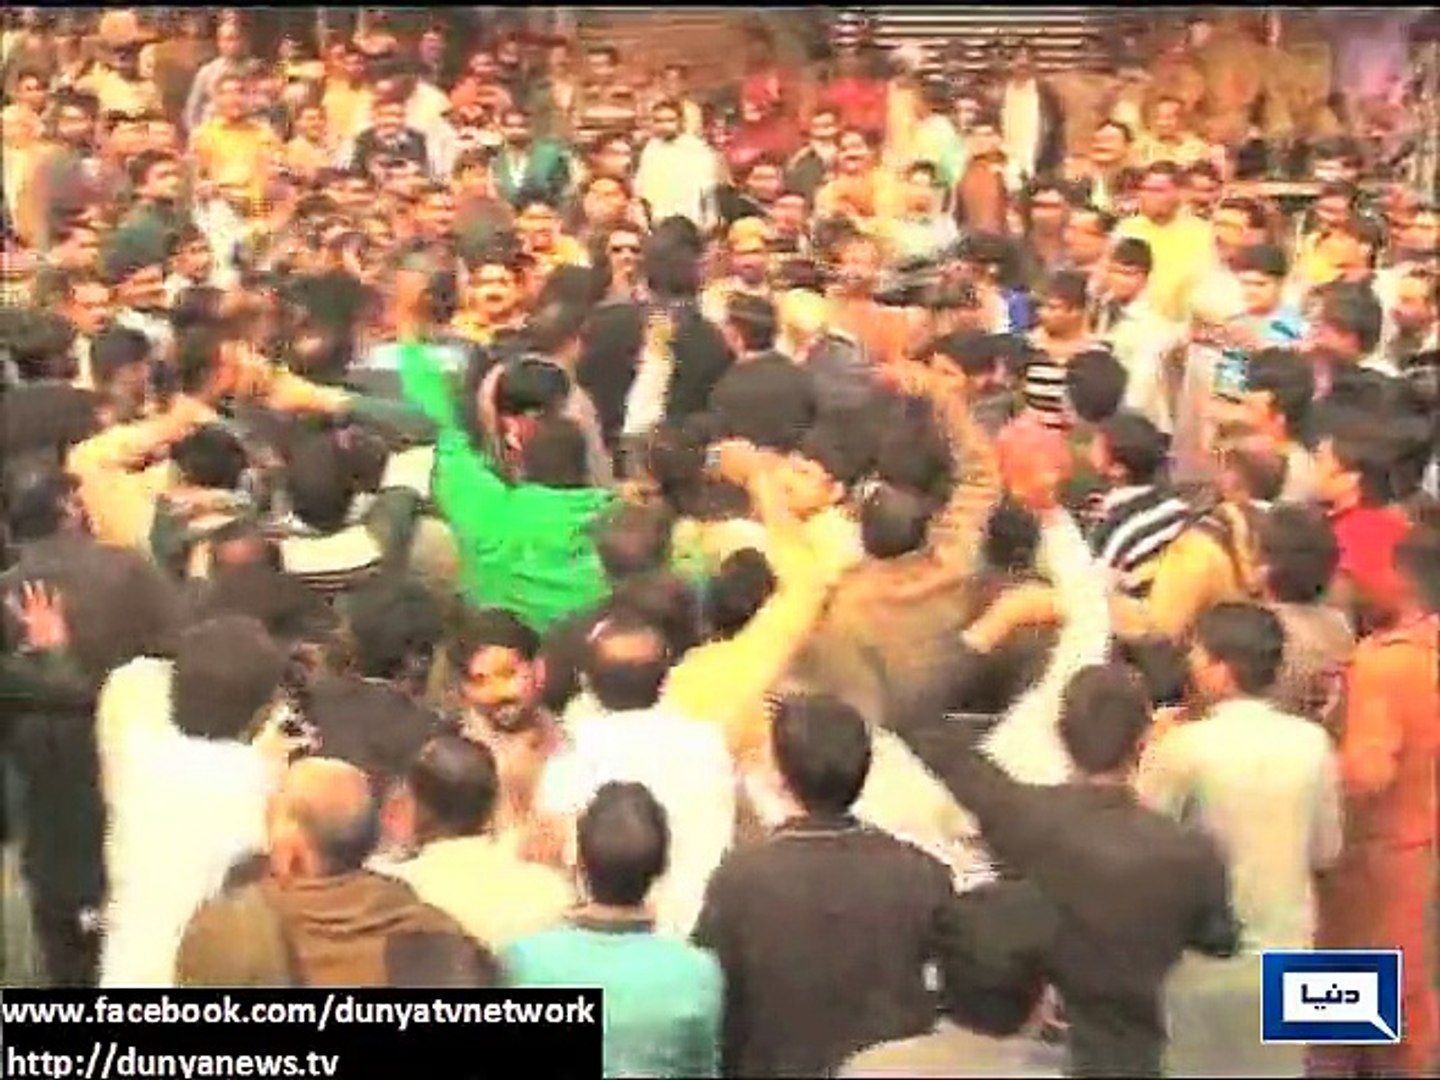 Dunya News - Political issues come to roads